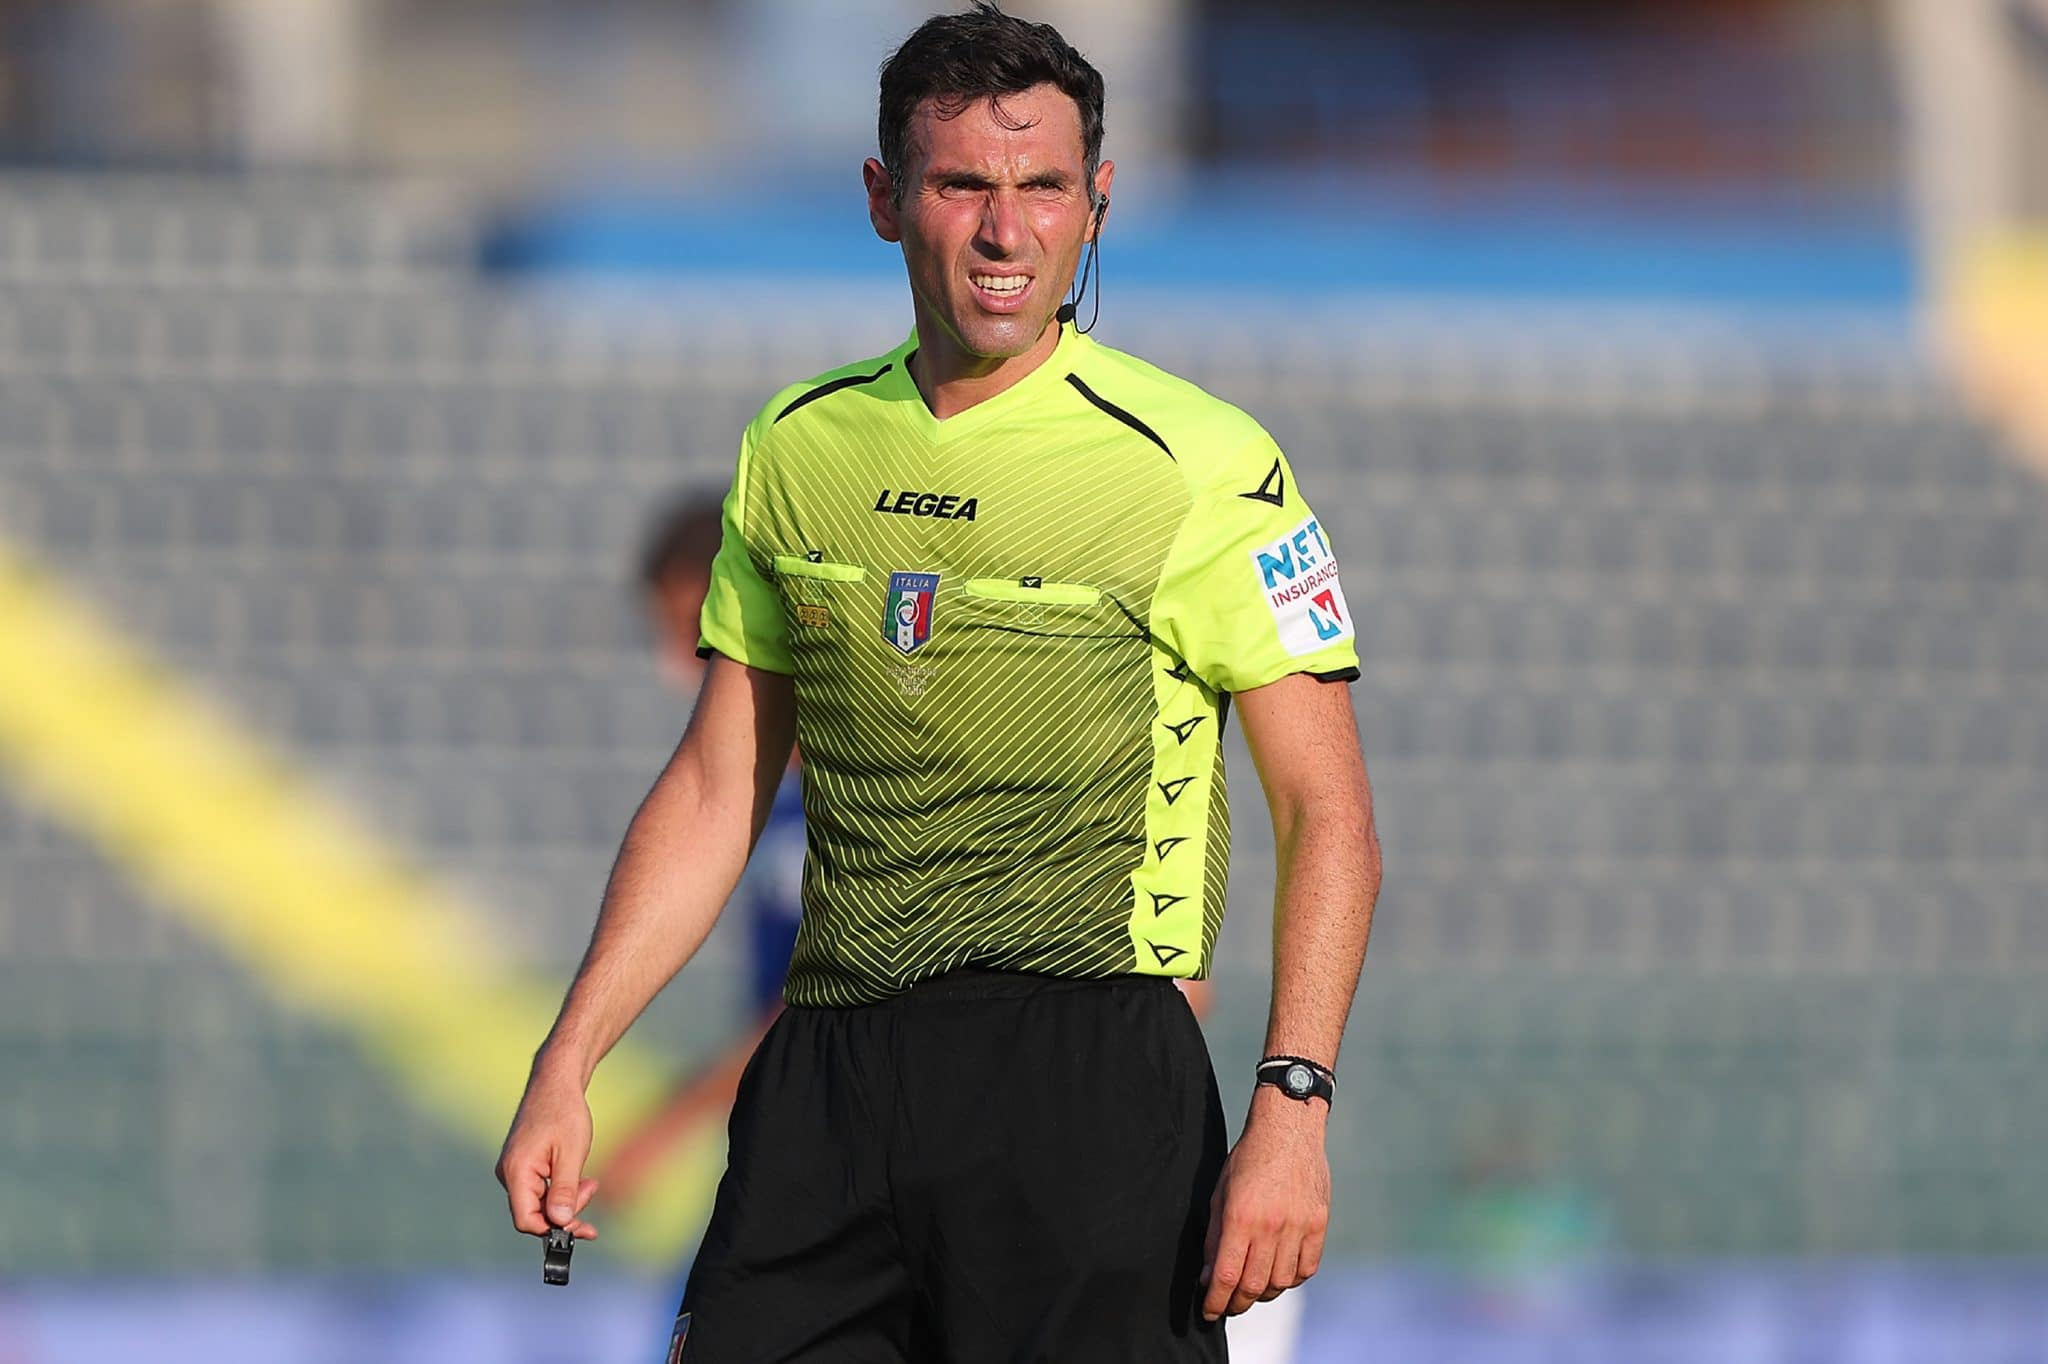 EMPOLI, ITALY - AUGUST 15: Juan Luca Sacchi referee looks on during the Coppa Italia match between Empoli FC and Vicenza at Stadio Carlo Castellani on August 15, 2021 in Empoli, Italy.  (Photo by Gabriele Maltinti/Getty Images)